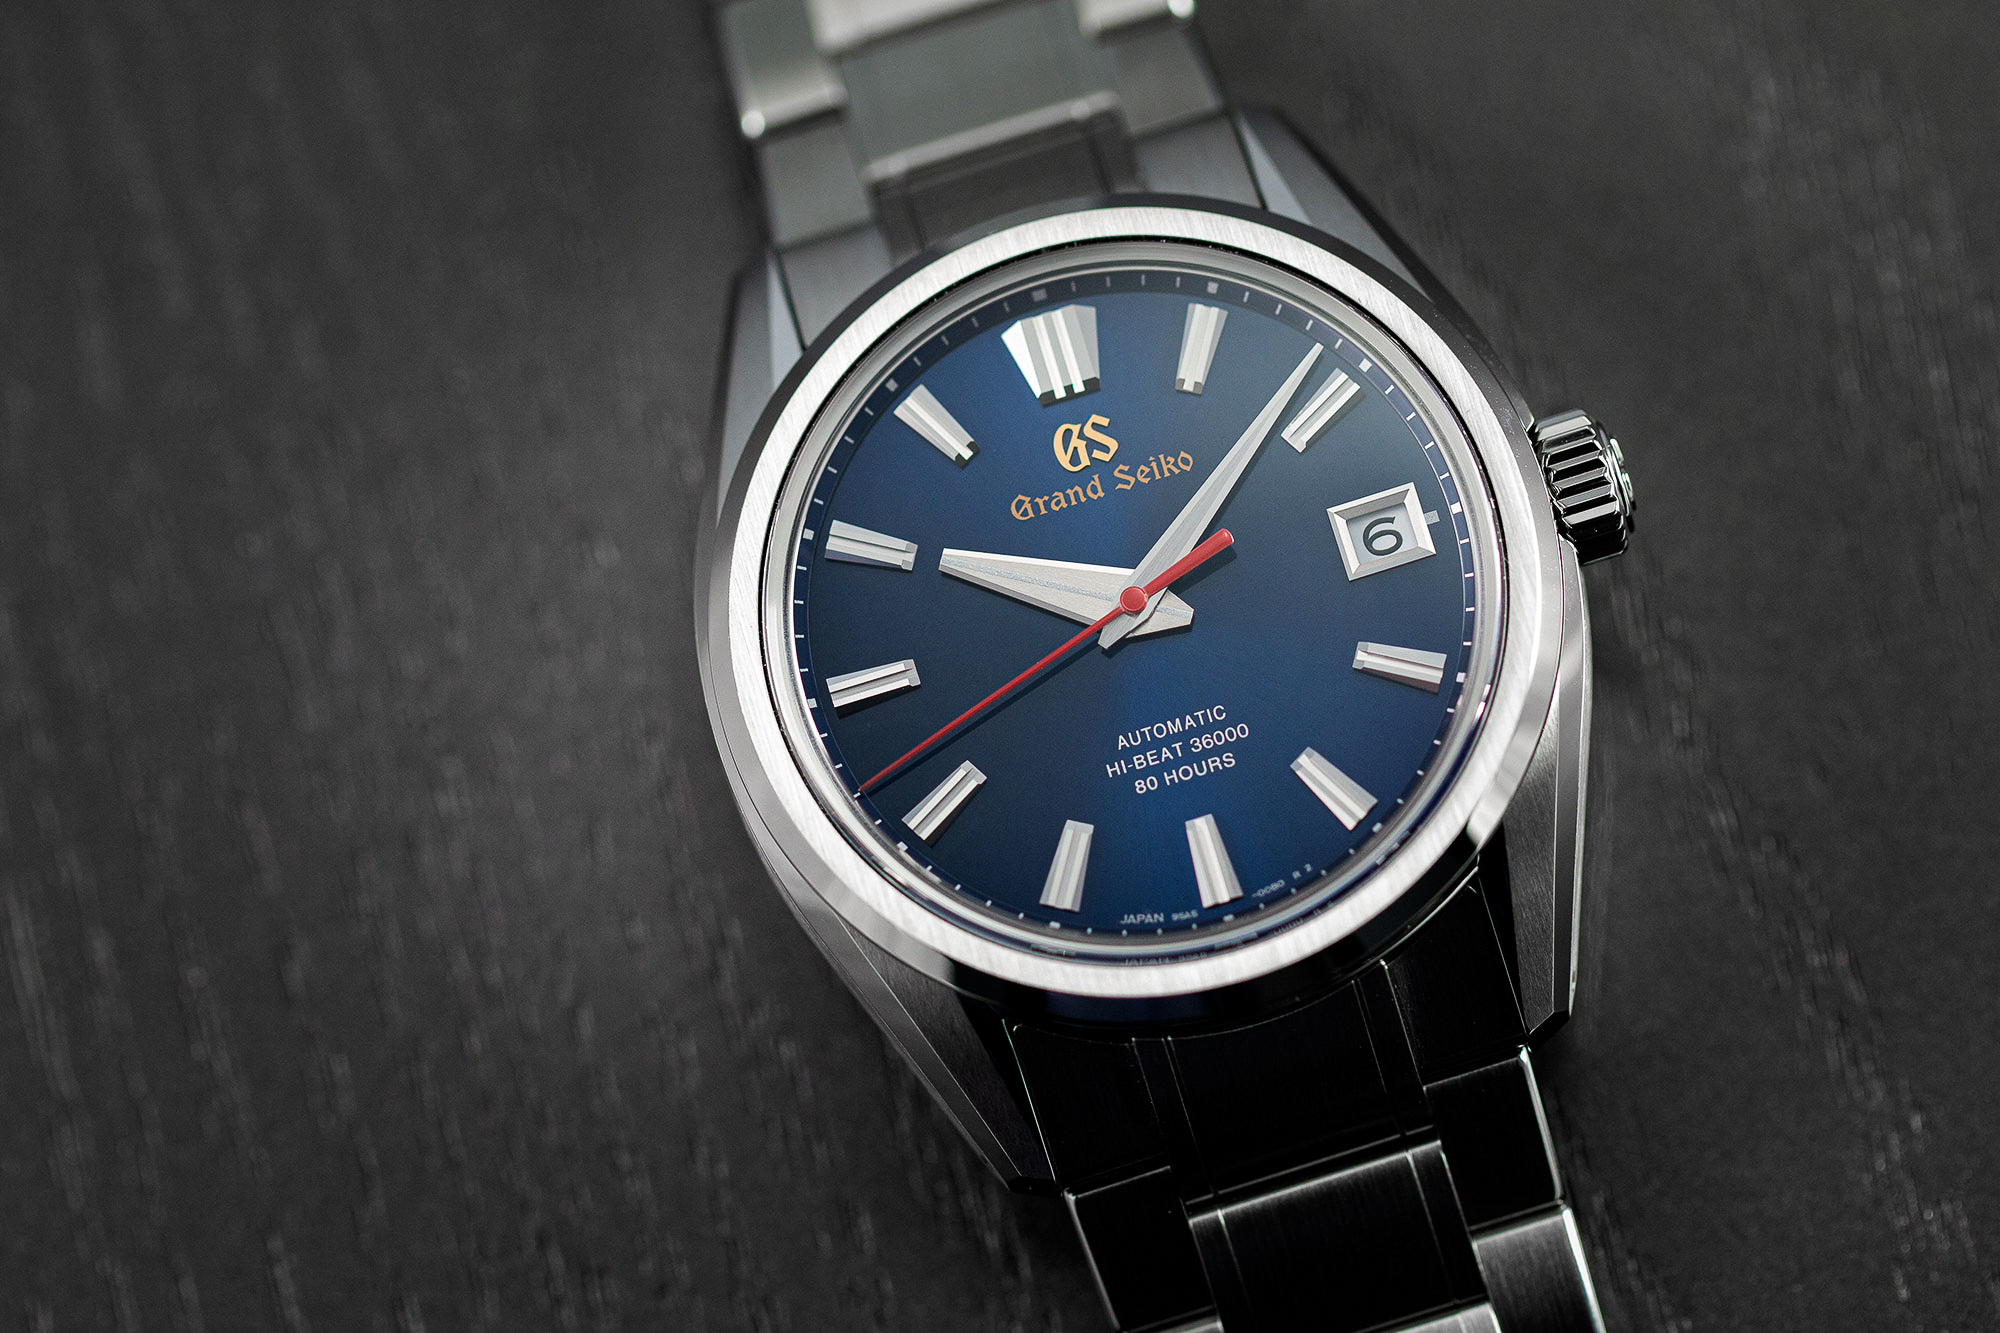 Grand Seiko SLGH003 wristwatch with a blue dial and red accents on a tabletop.